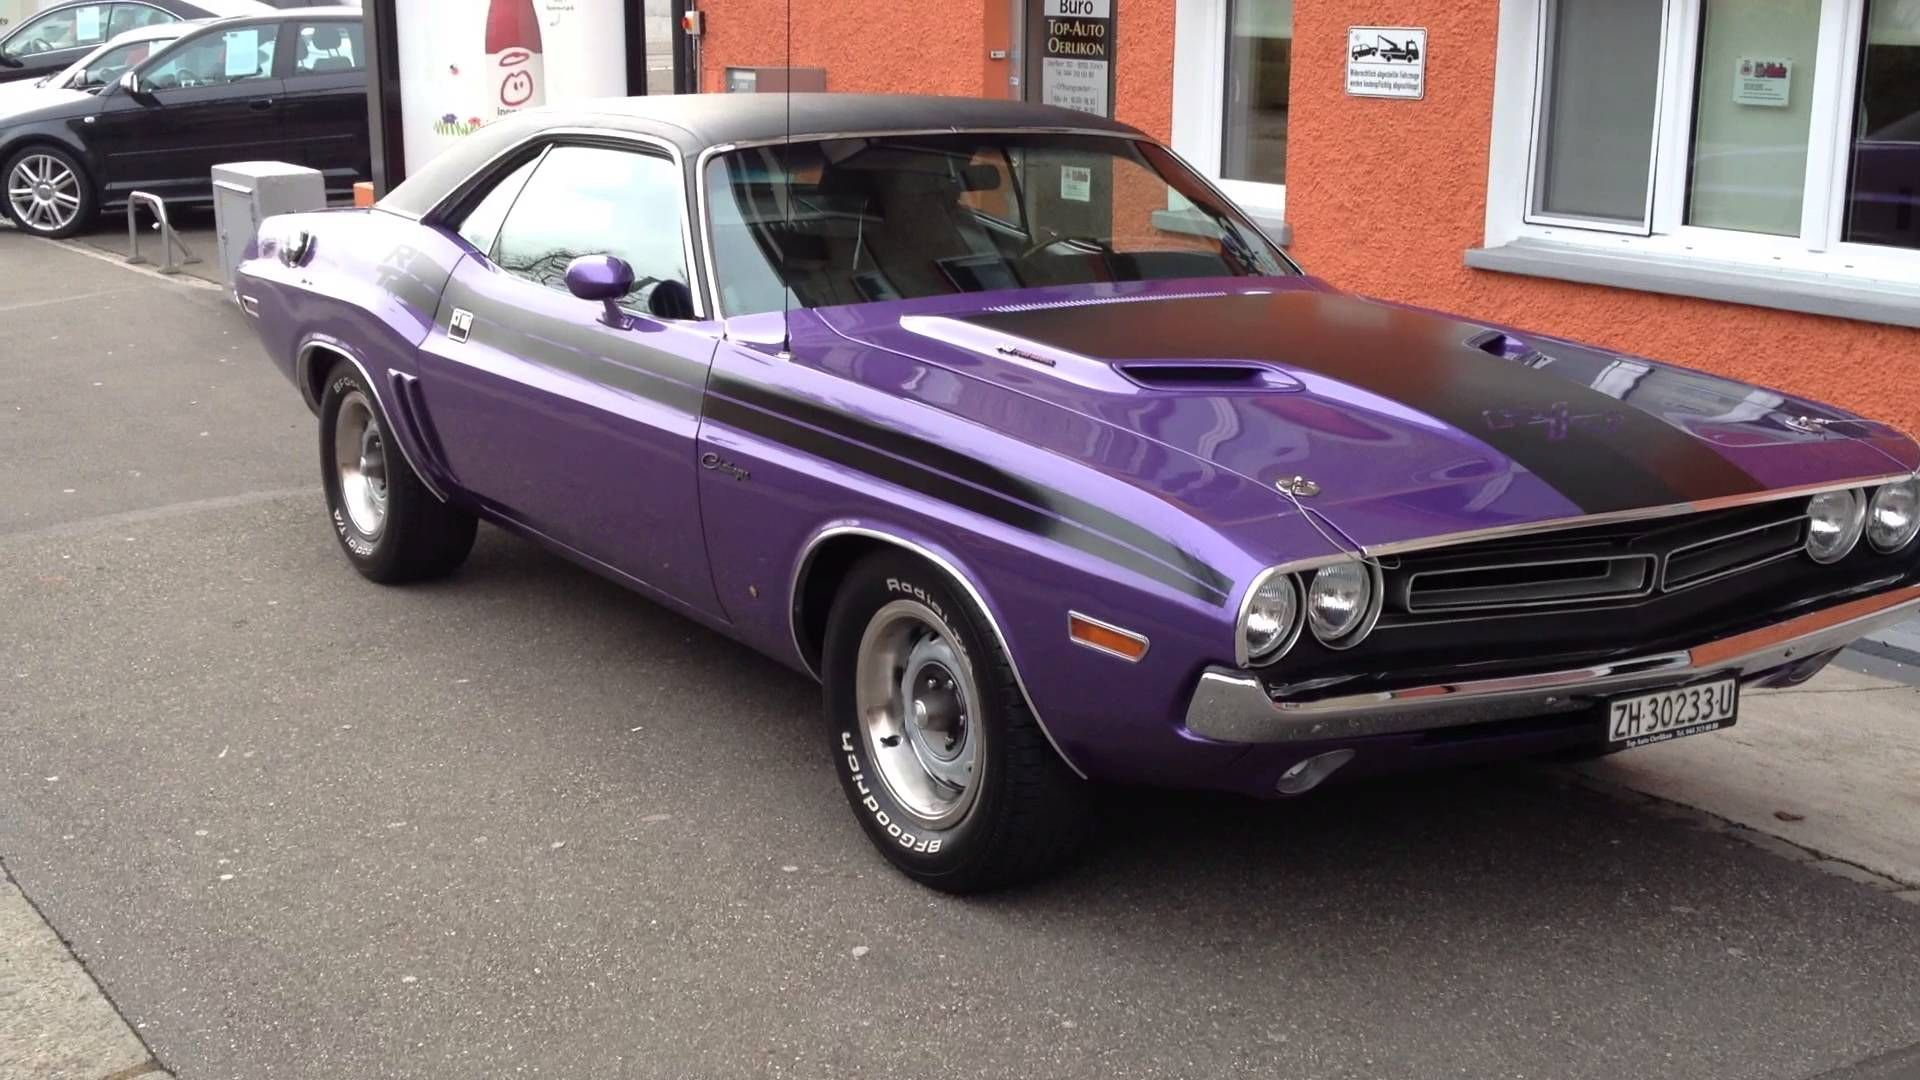 Image Result For 71 Dodge Challenger Purple Car Stuff Dodge